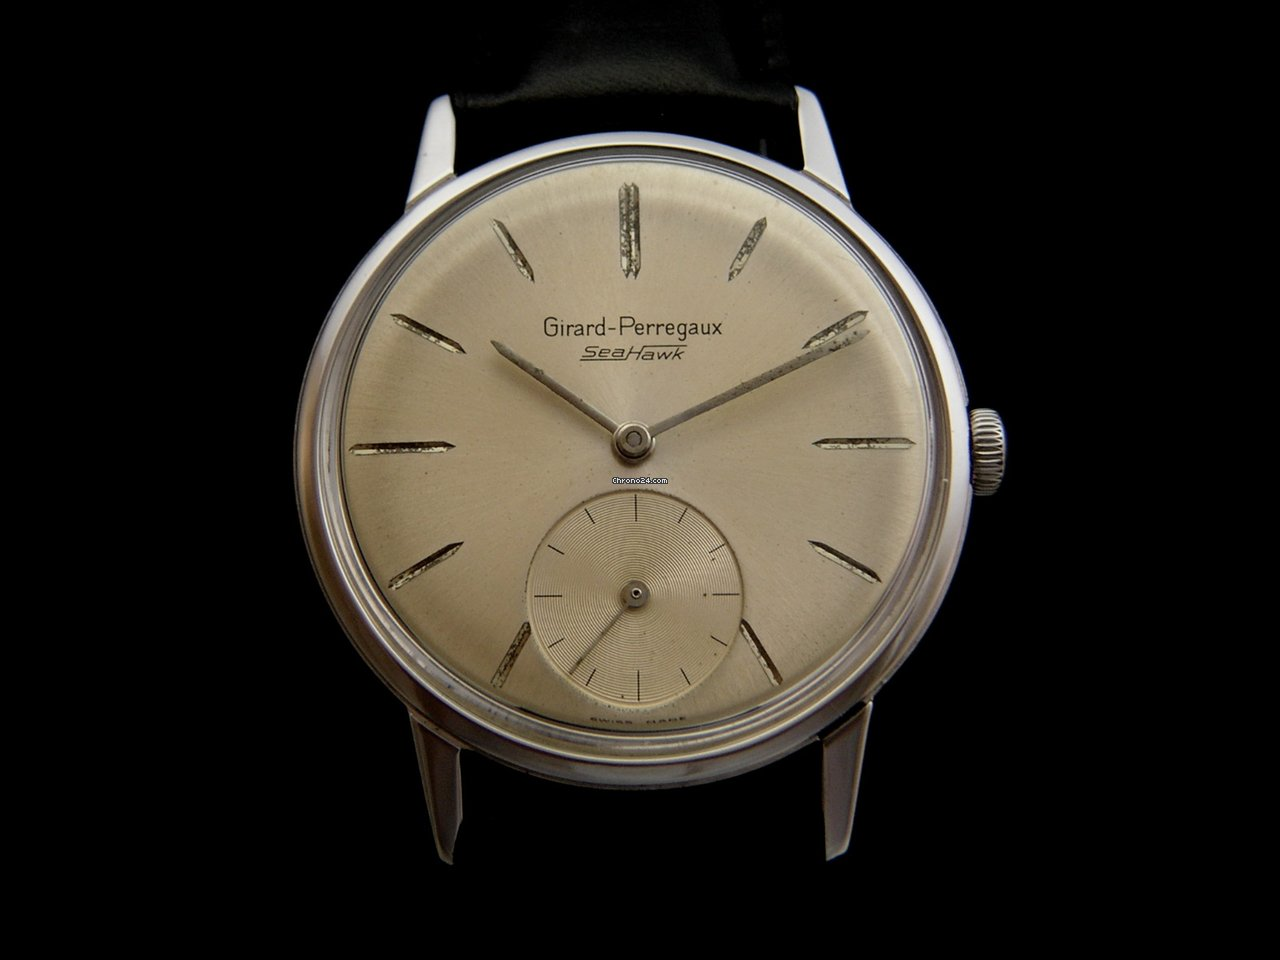 Girard perregaux vintage sea hawk sold on chrono24 for Girard perregaux